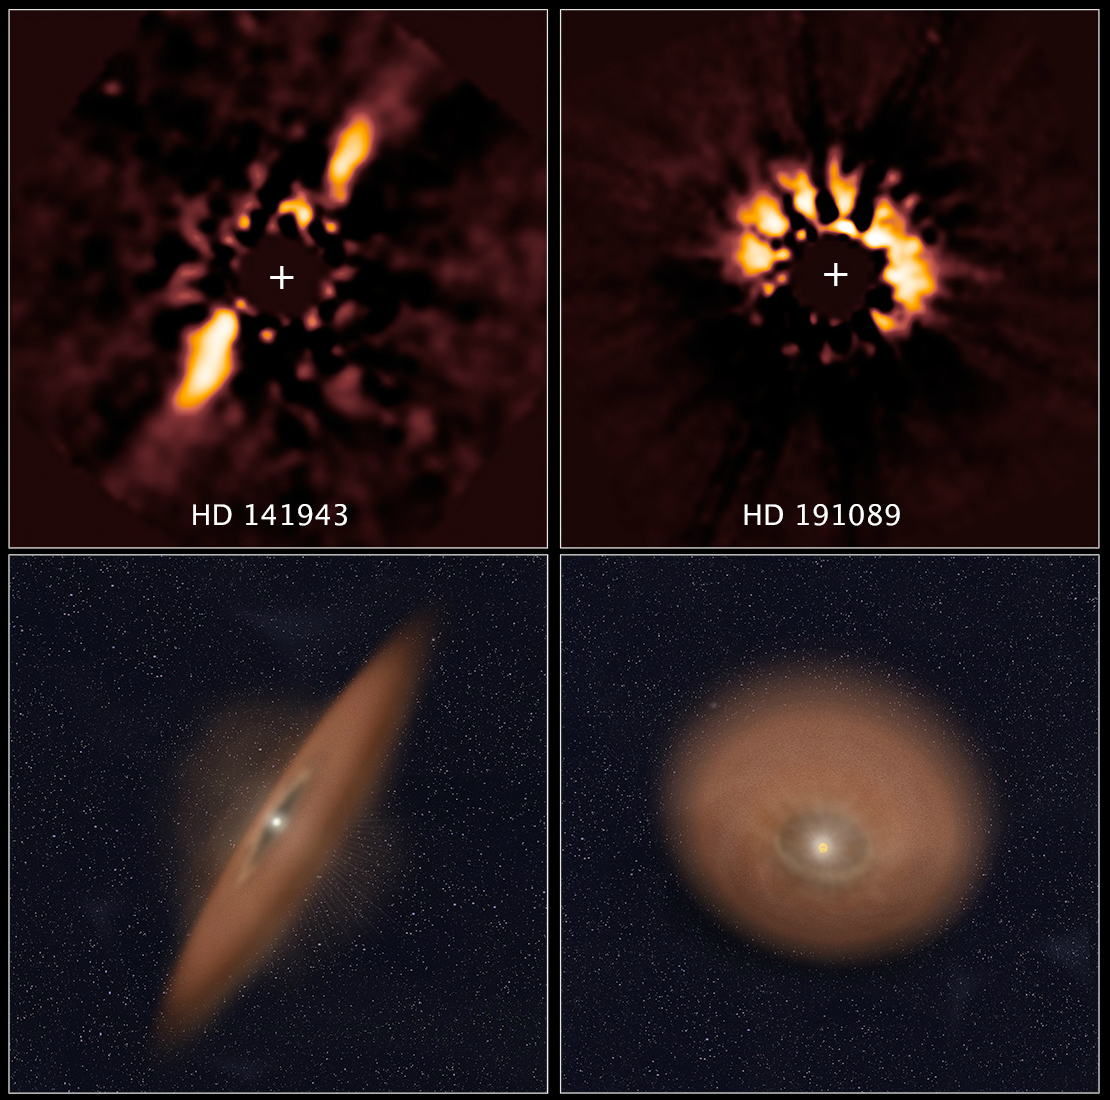 The two images at top reveal debris disks around young stars uncovered in archival images taken by NASA's Hubble Space Telescope. The illustration beneath each image depicts the orientation of the debris disks